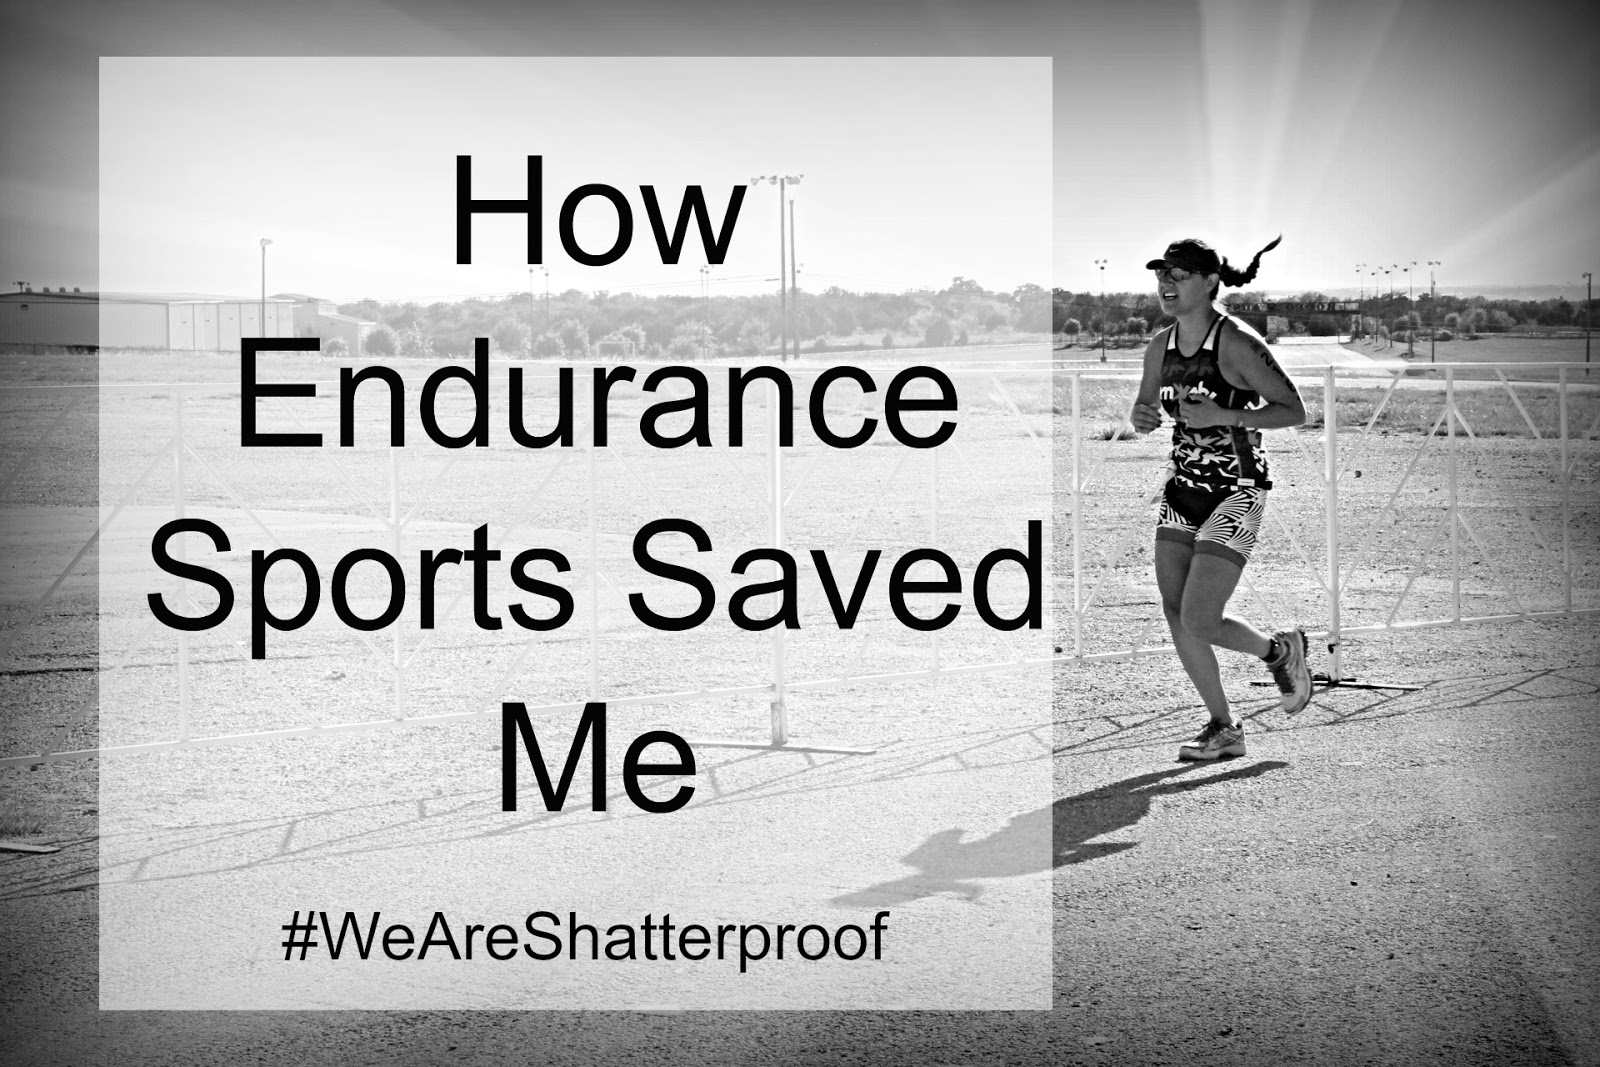 Overcoming Depression, Self-harm & Addiction – How Endurance Sports Saved Me